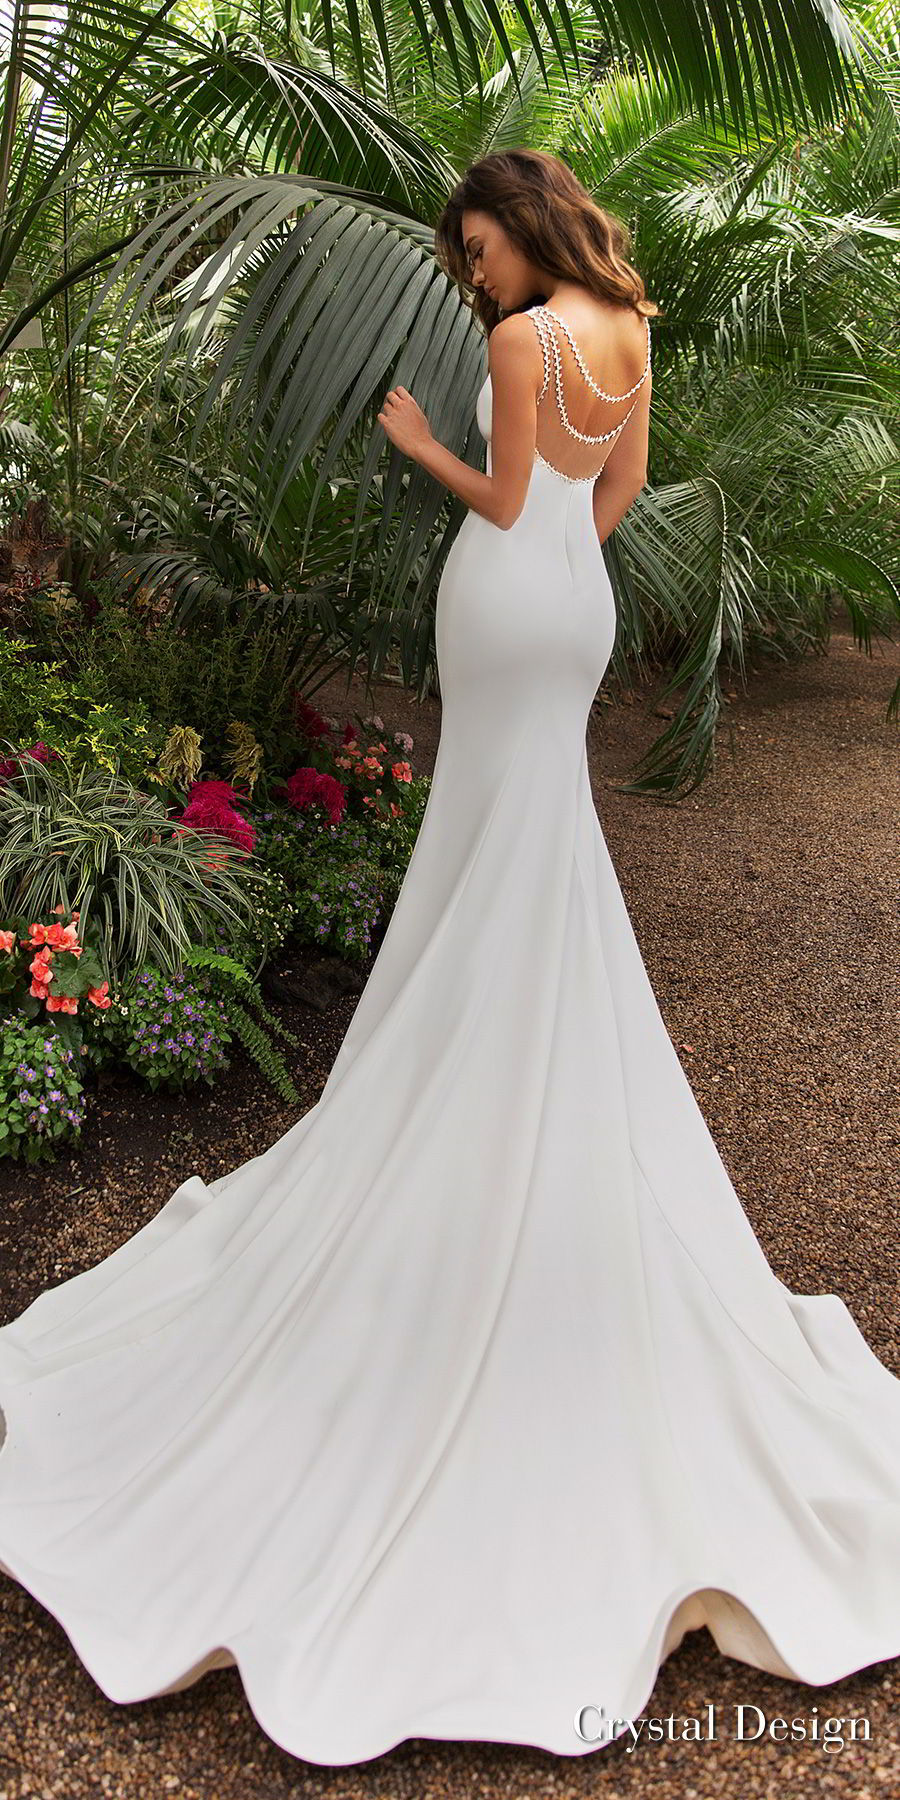 crystal design 2018 sleeveless deep v neck simple clean fit and flare wedding dress sheer back chapel train (candle) bv